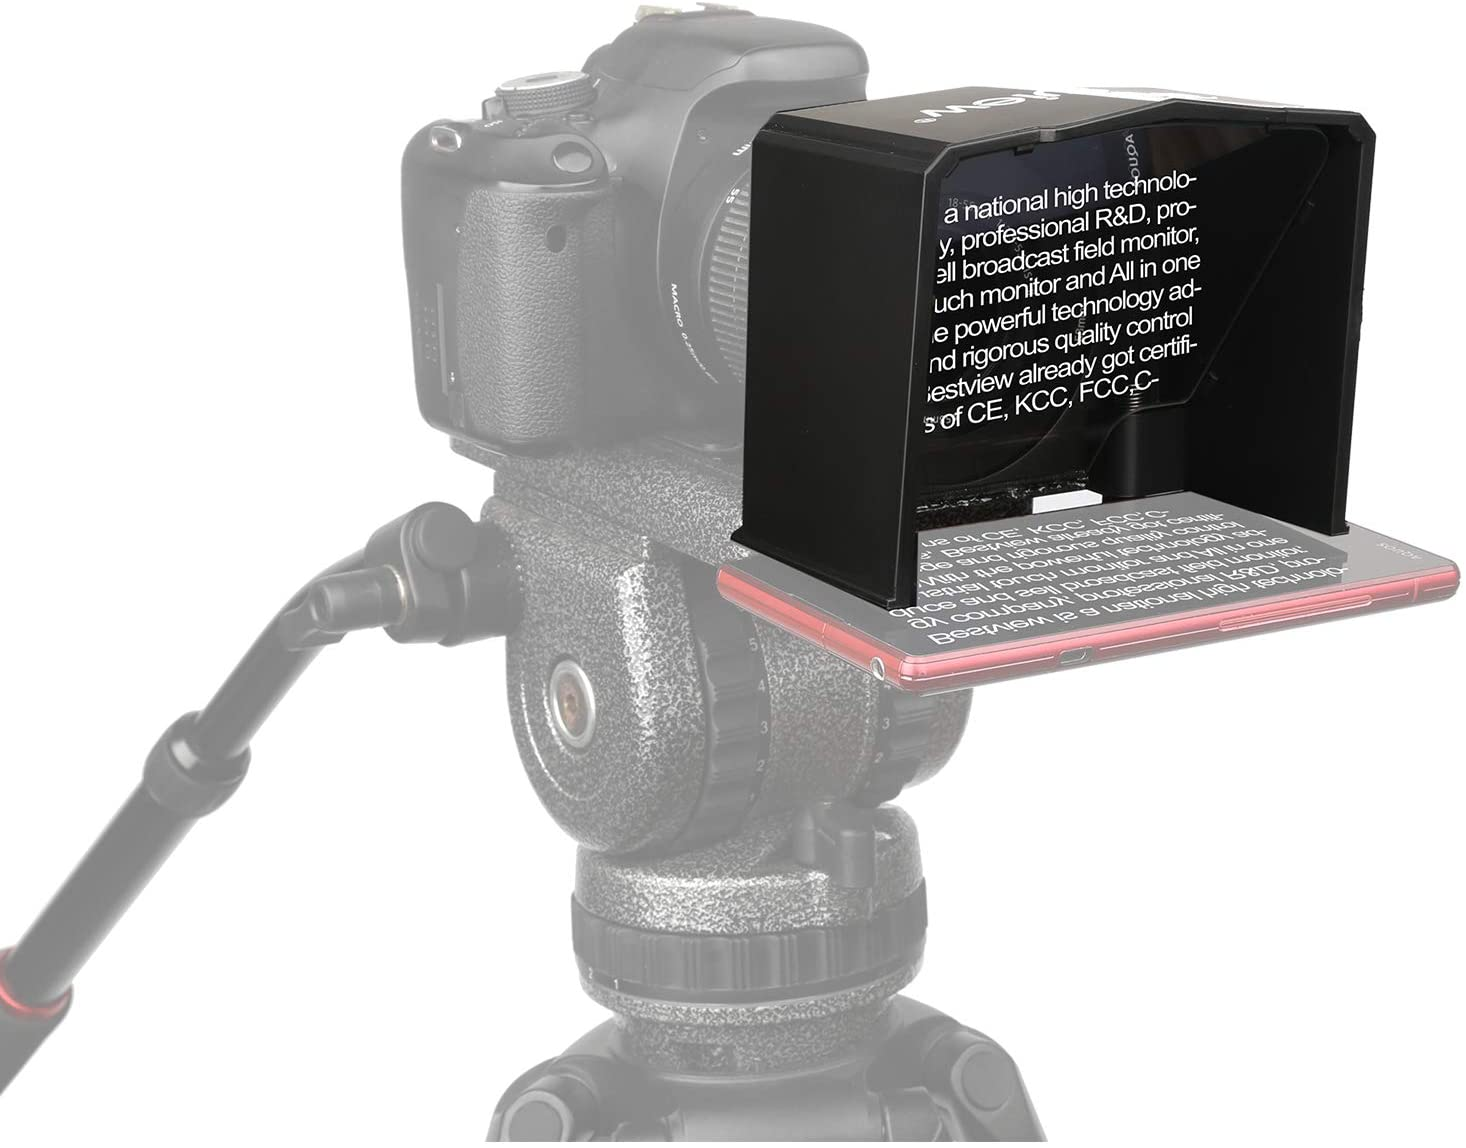 Bestview T1 Smartphone Teleprompter with Remote Control Mobile, IPad & Tablet Telepromter Bestview